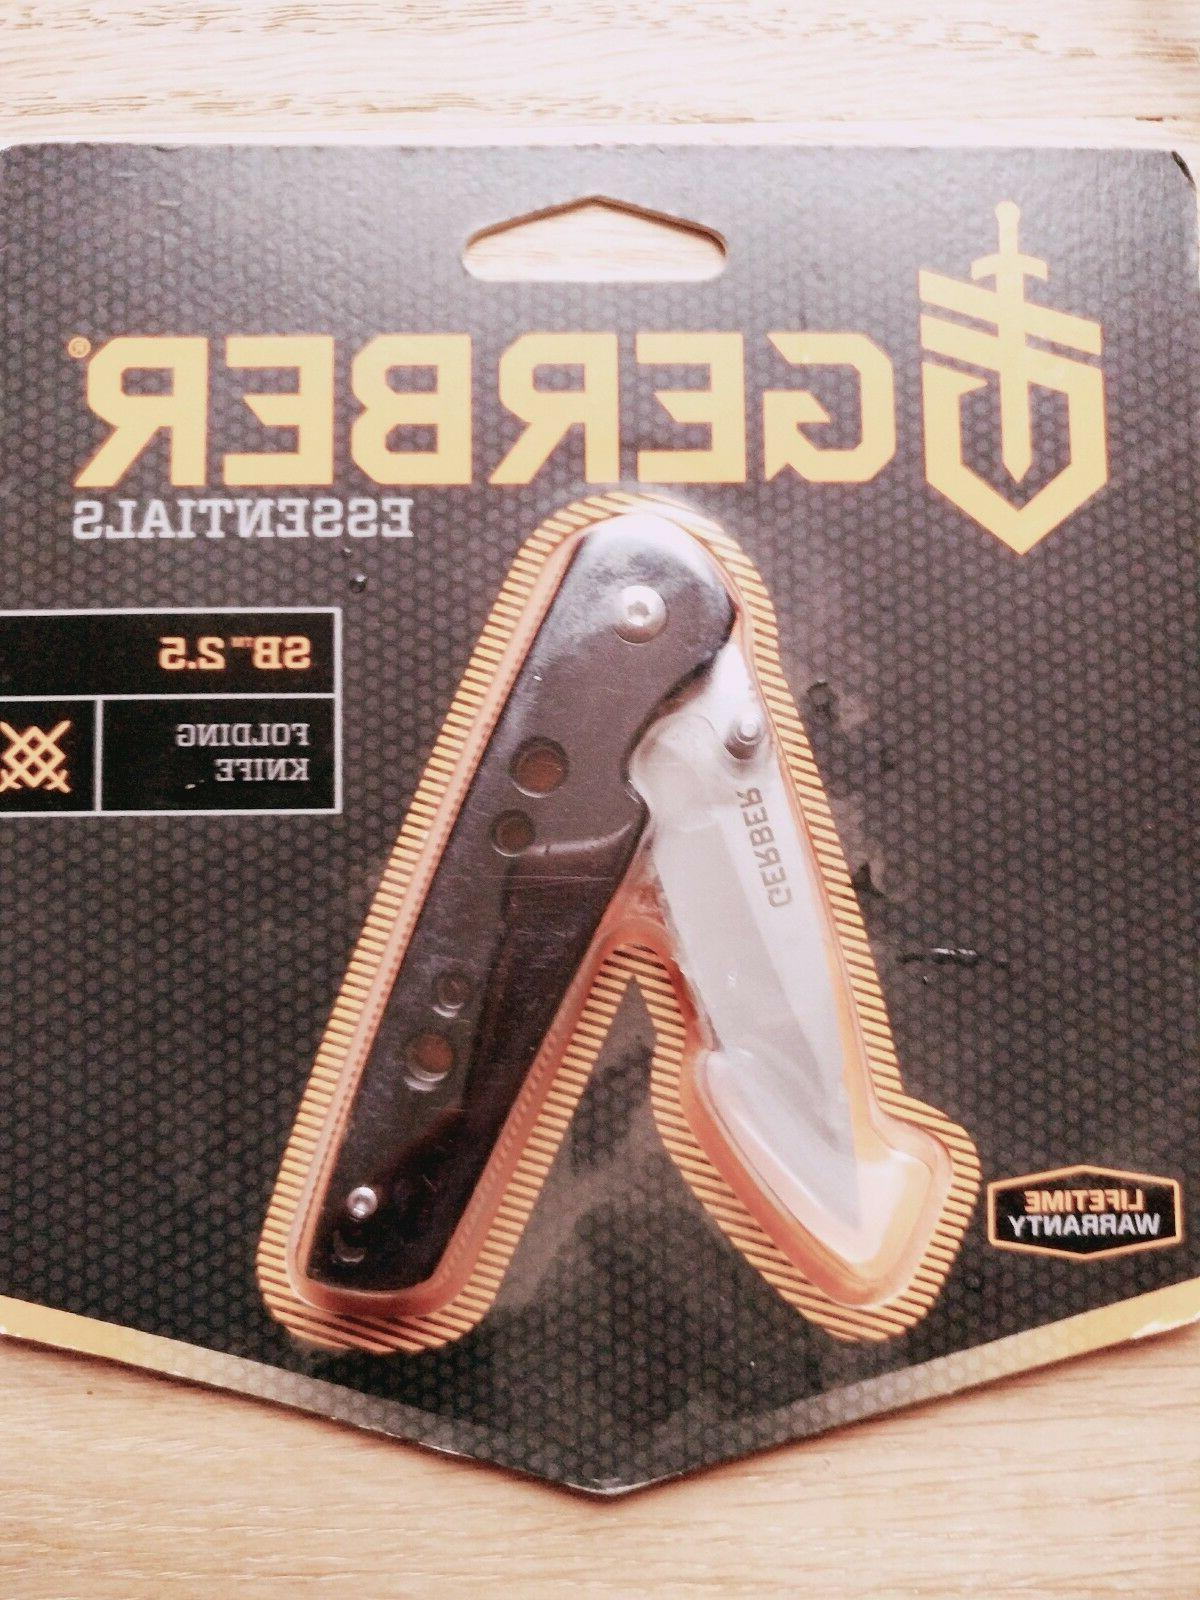 Gerber SB 2.5 Aluminum Handle Folding Pocket Knife